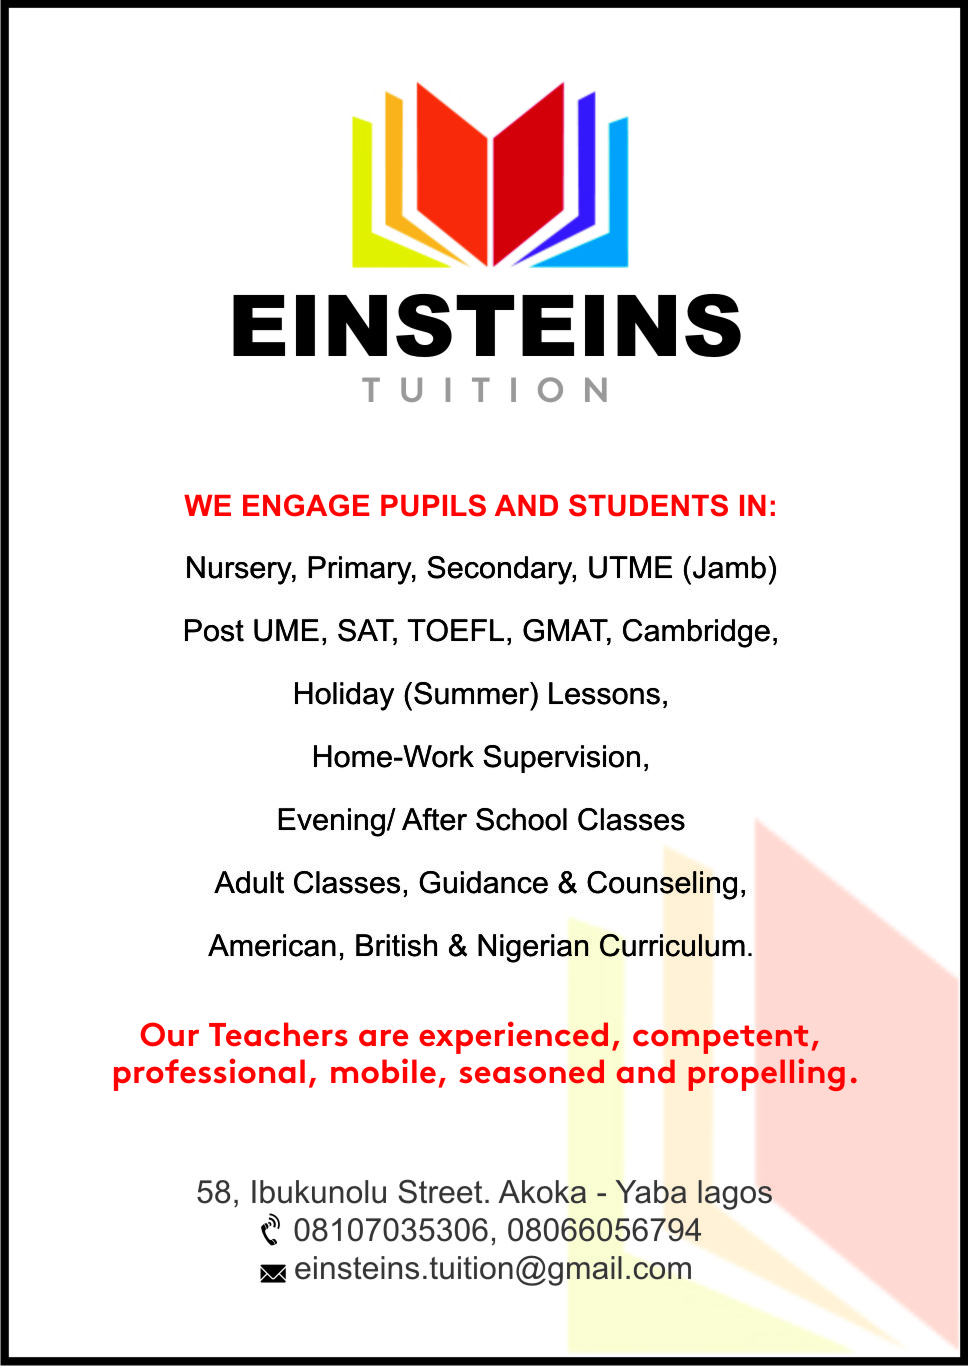 EINSTEINS TUITION